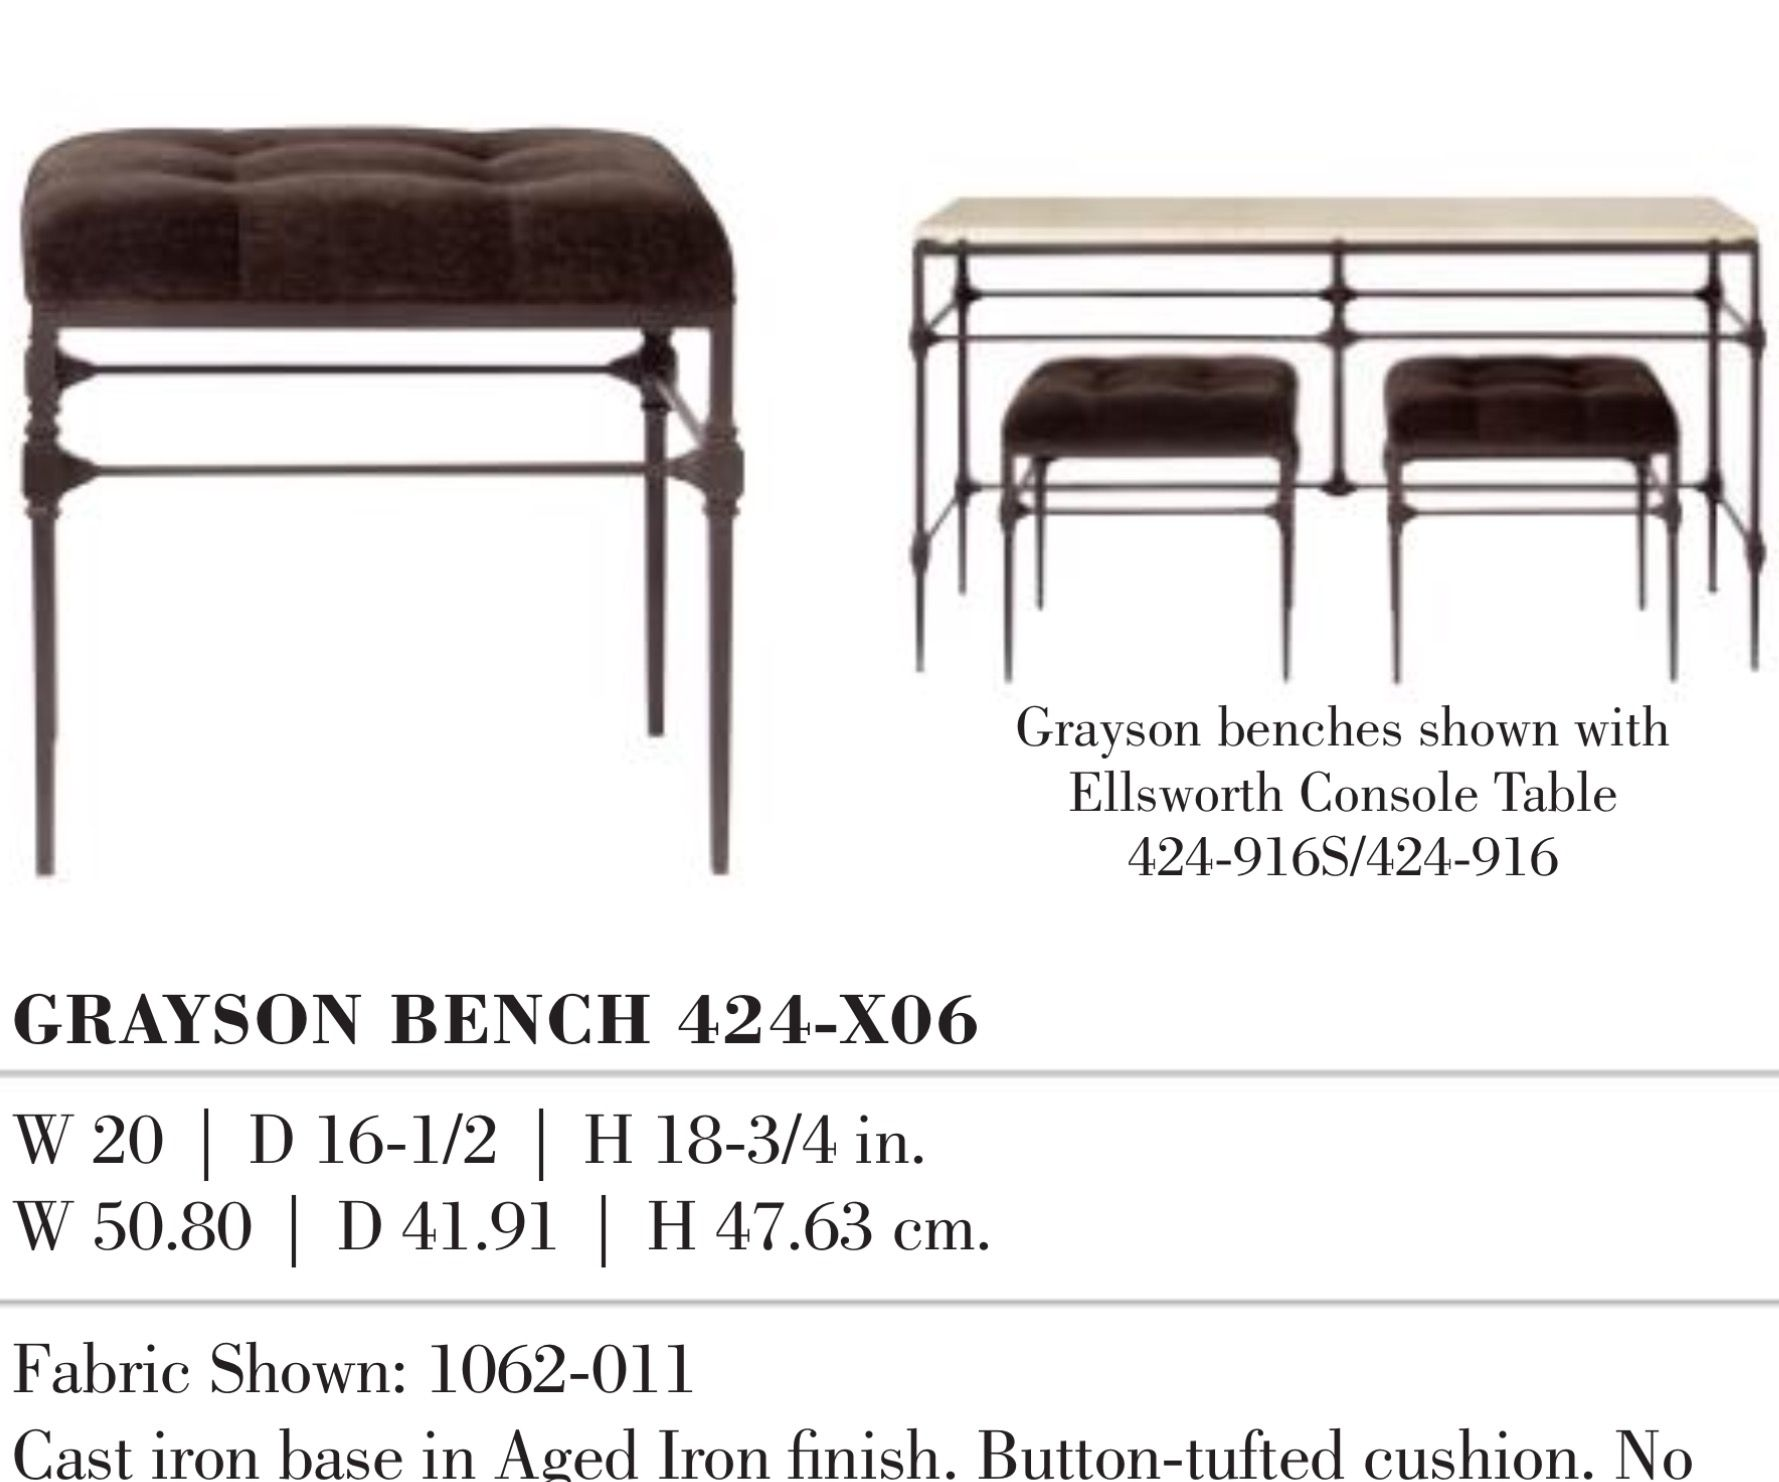 TWO OF THESE TO FIT UNDER GRAYSON TABLE (RIGHT OF FIREPLACE)